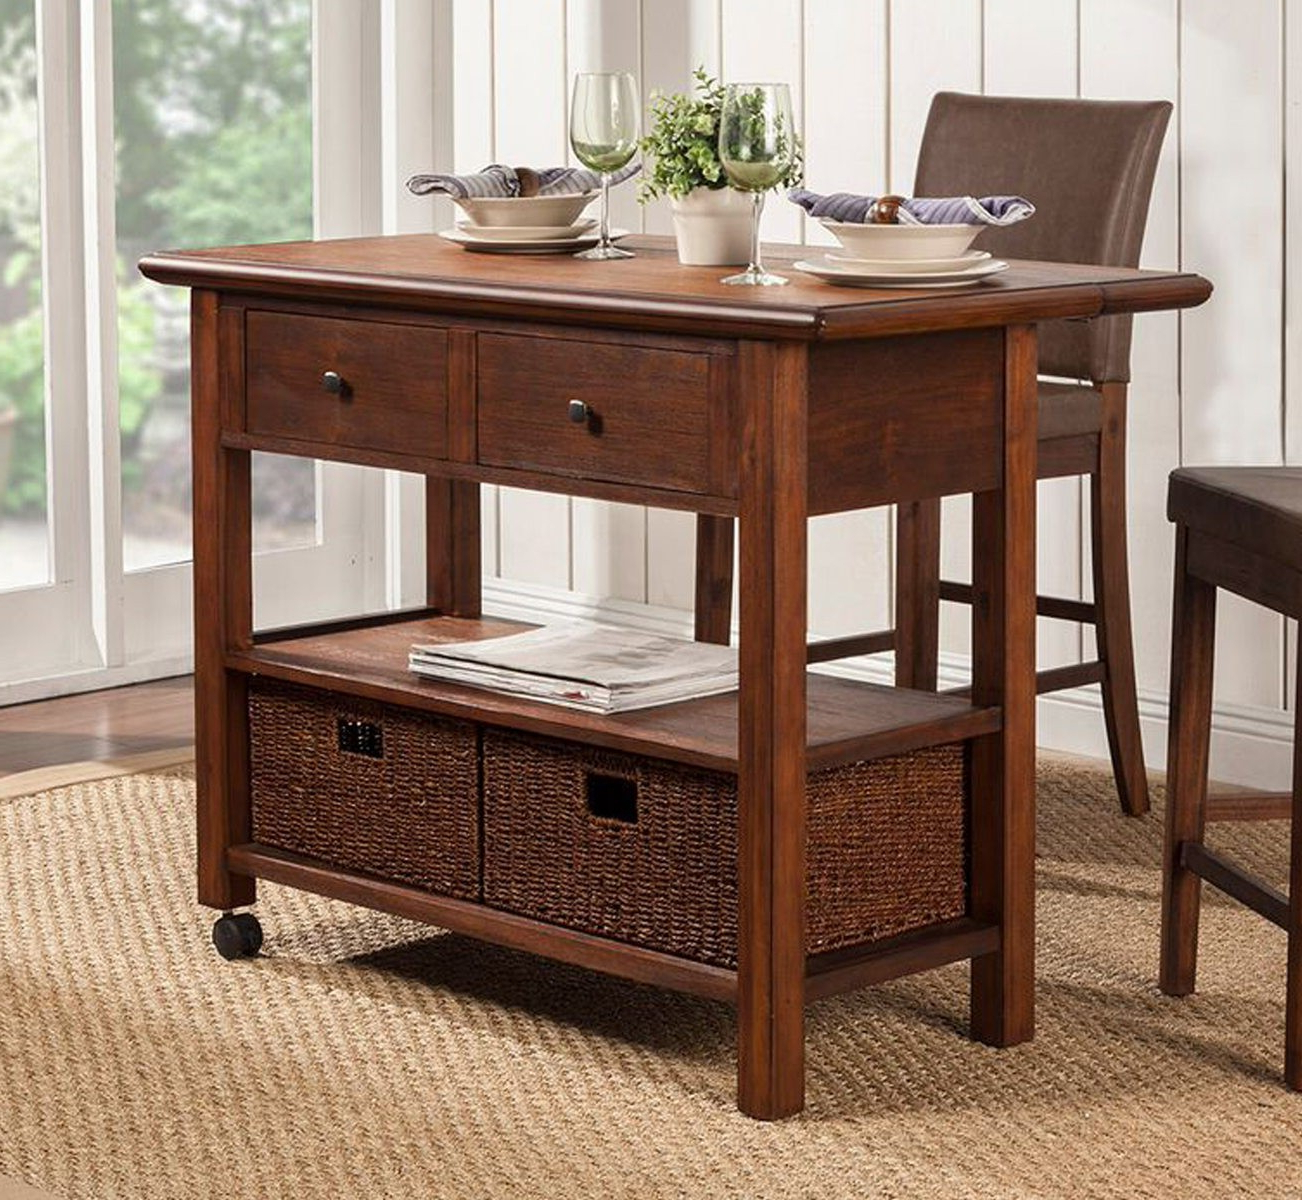 2018 Alpine Furniture Caldwell 3 Piece Kitchen Cart Set In Regarding Cappuccino Finish Wood Classic Casual Dining Tables (View 1 of 30)